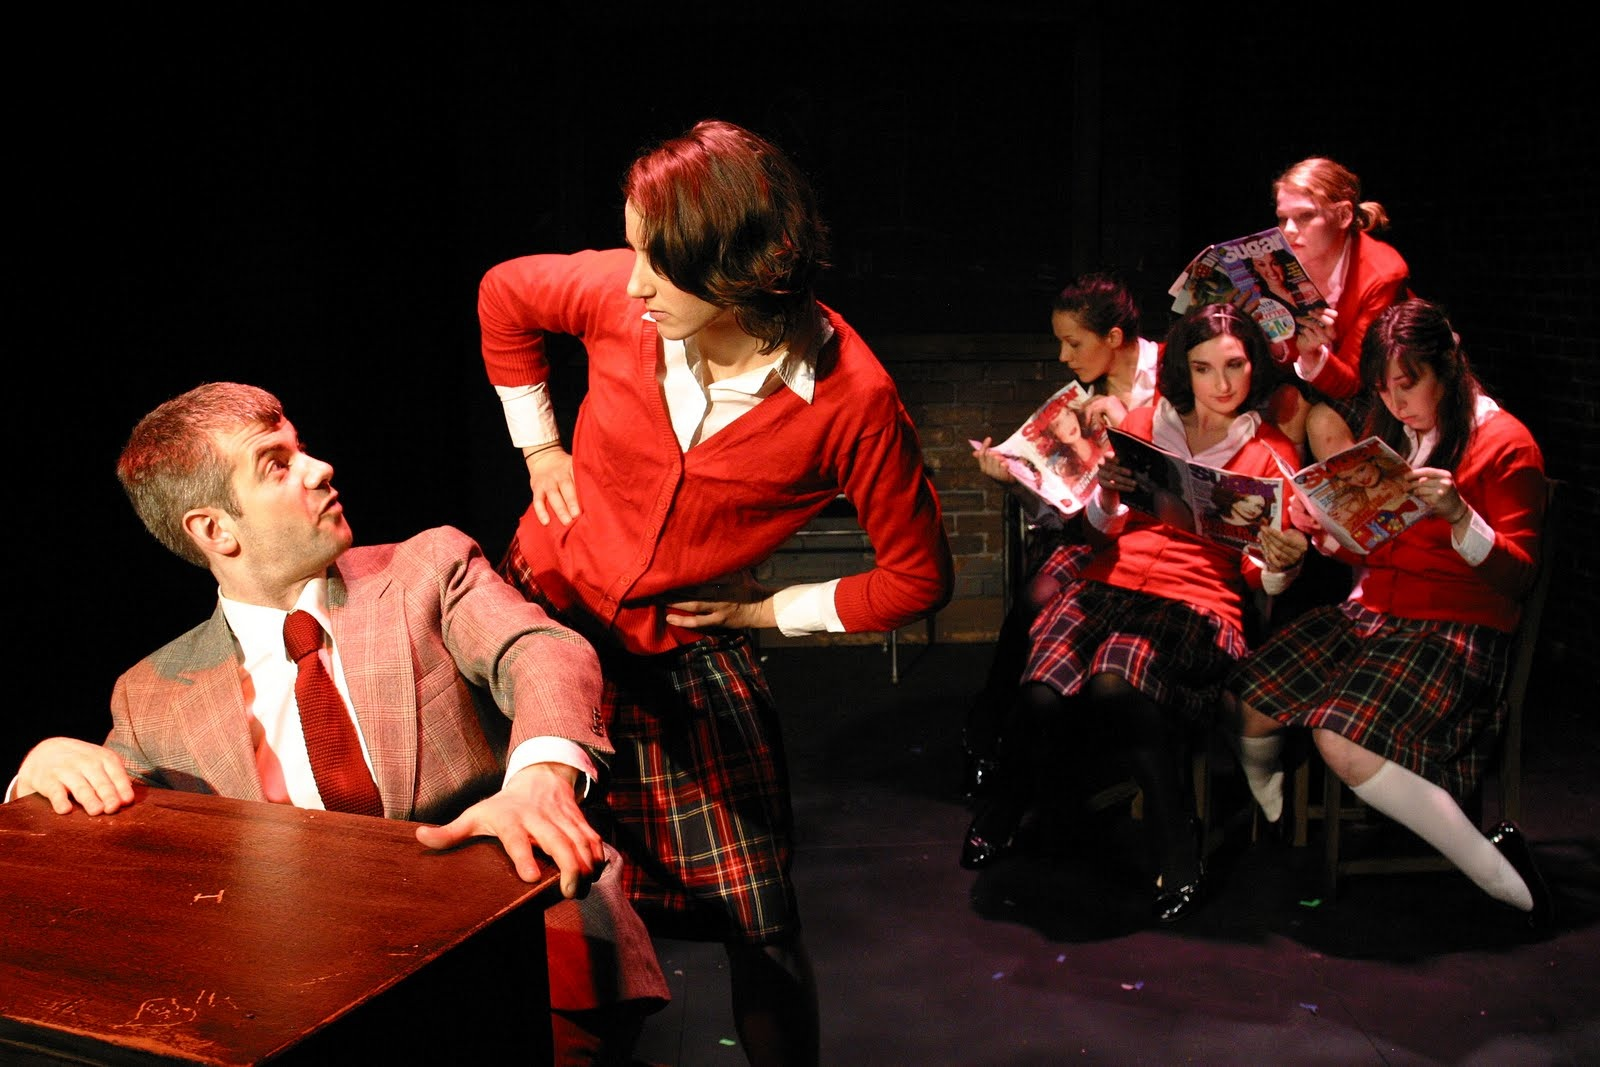 Nick Afka as Desk & Lucy Gillespie as Hazel. Background from back left moving clockwise- Louiza Collins as Anna, Lillian Meredith as Jenny, Laura Wiese as Dina, and Sarah Ann Masse as Chelsea